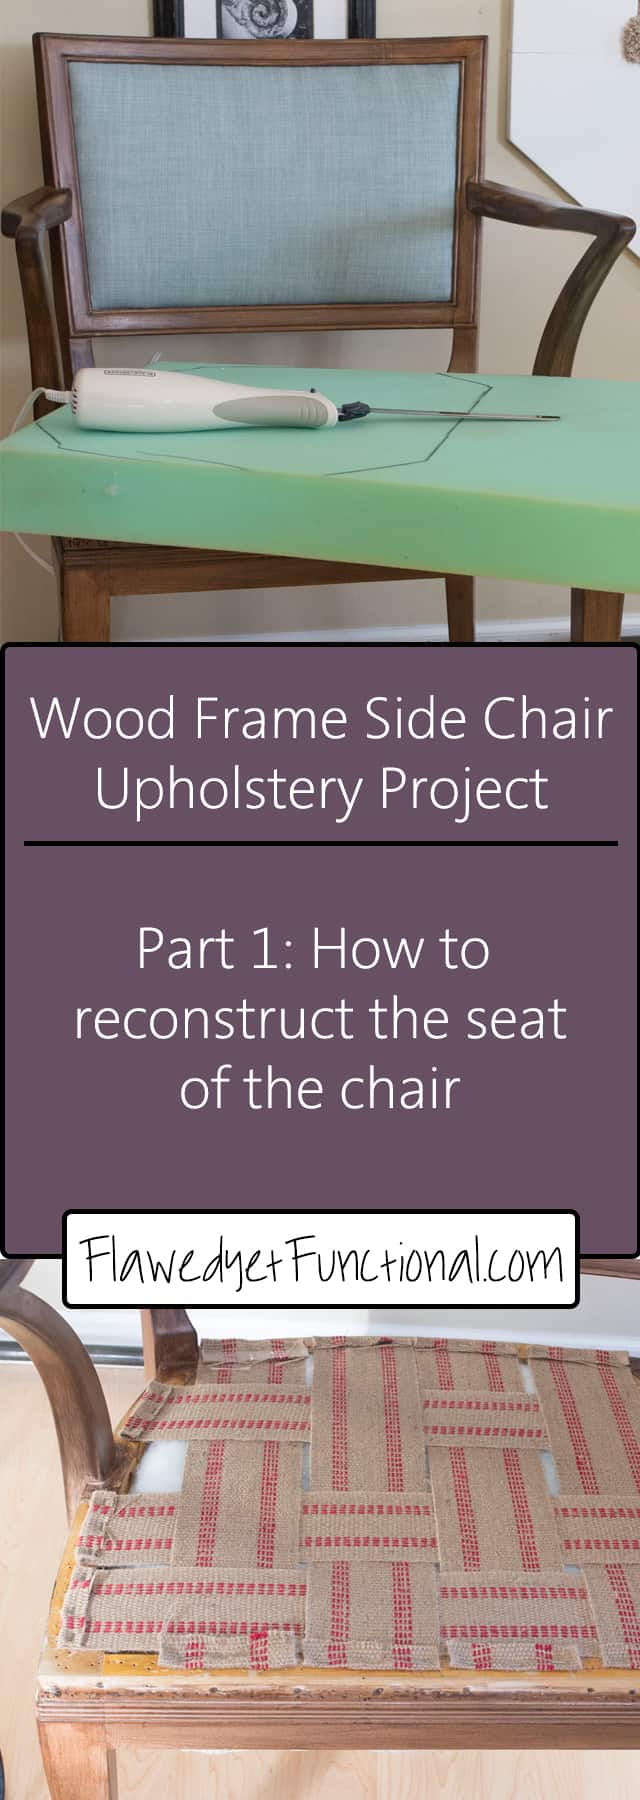 Wood Frame Chair Upholstery